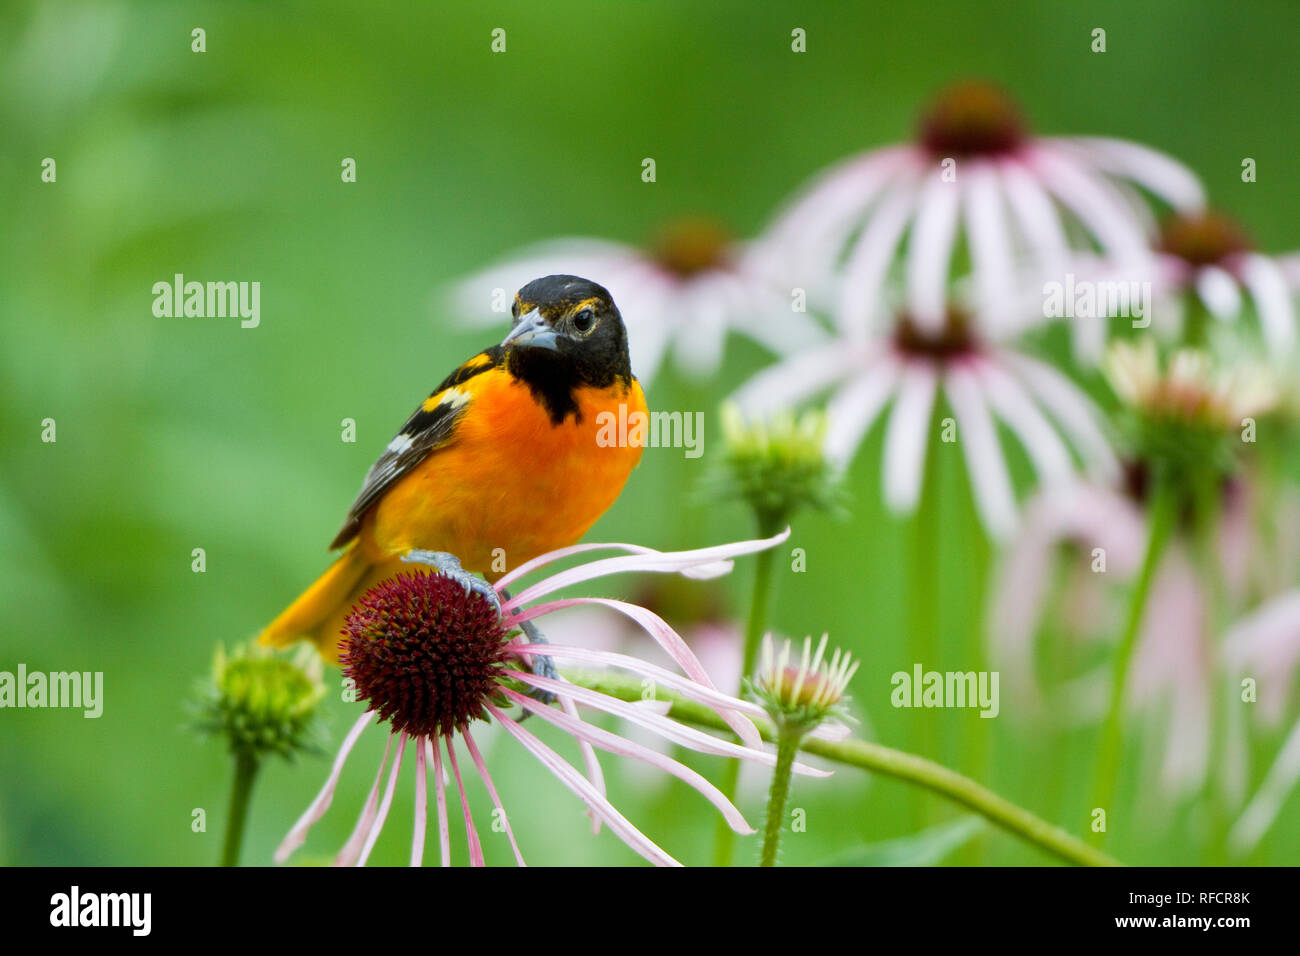 01611-09301 Baltimore Oriole (Icterus galbula) male on Pale Purple Coneflower (Echinacea pallida) in flower garden, Marion Co., IL - Stock Image